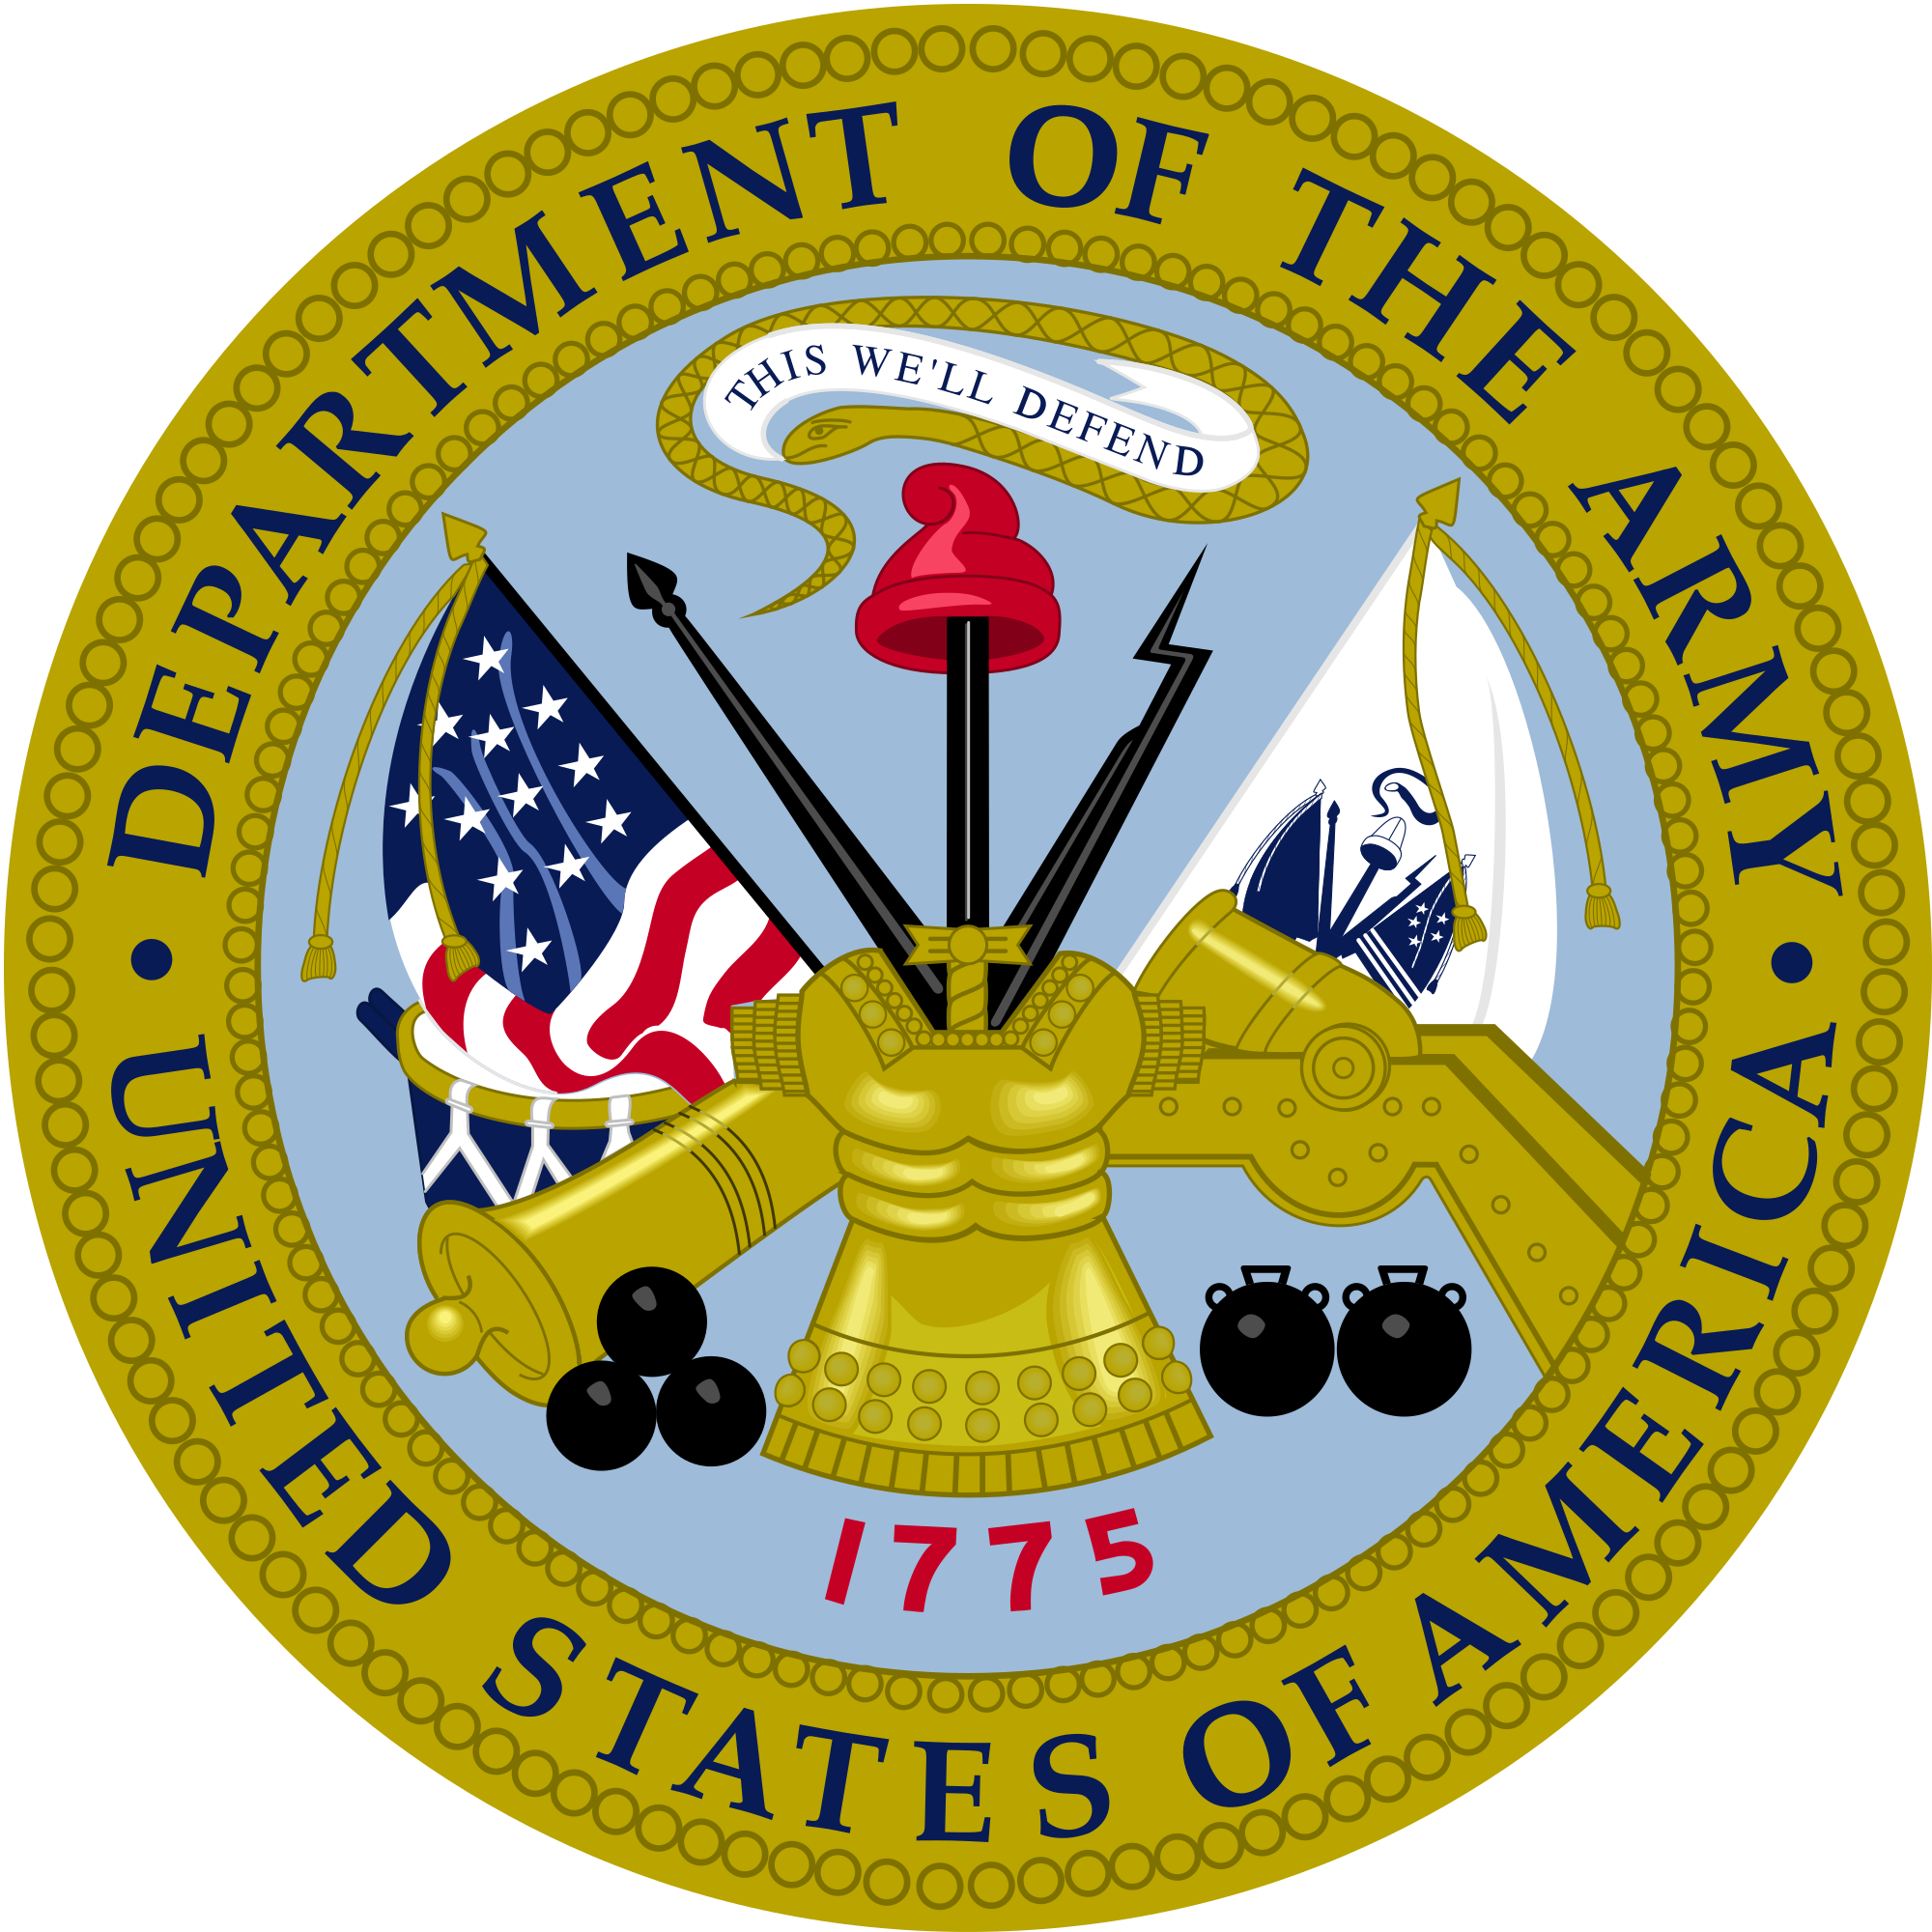 Us army seal png. File department of the